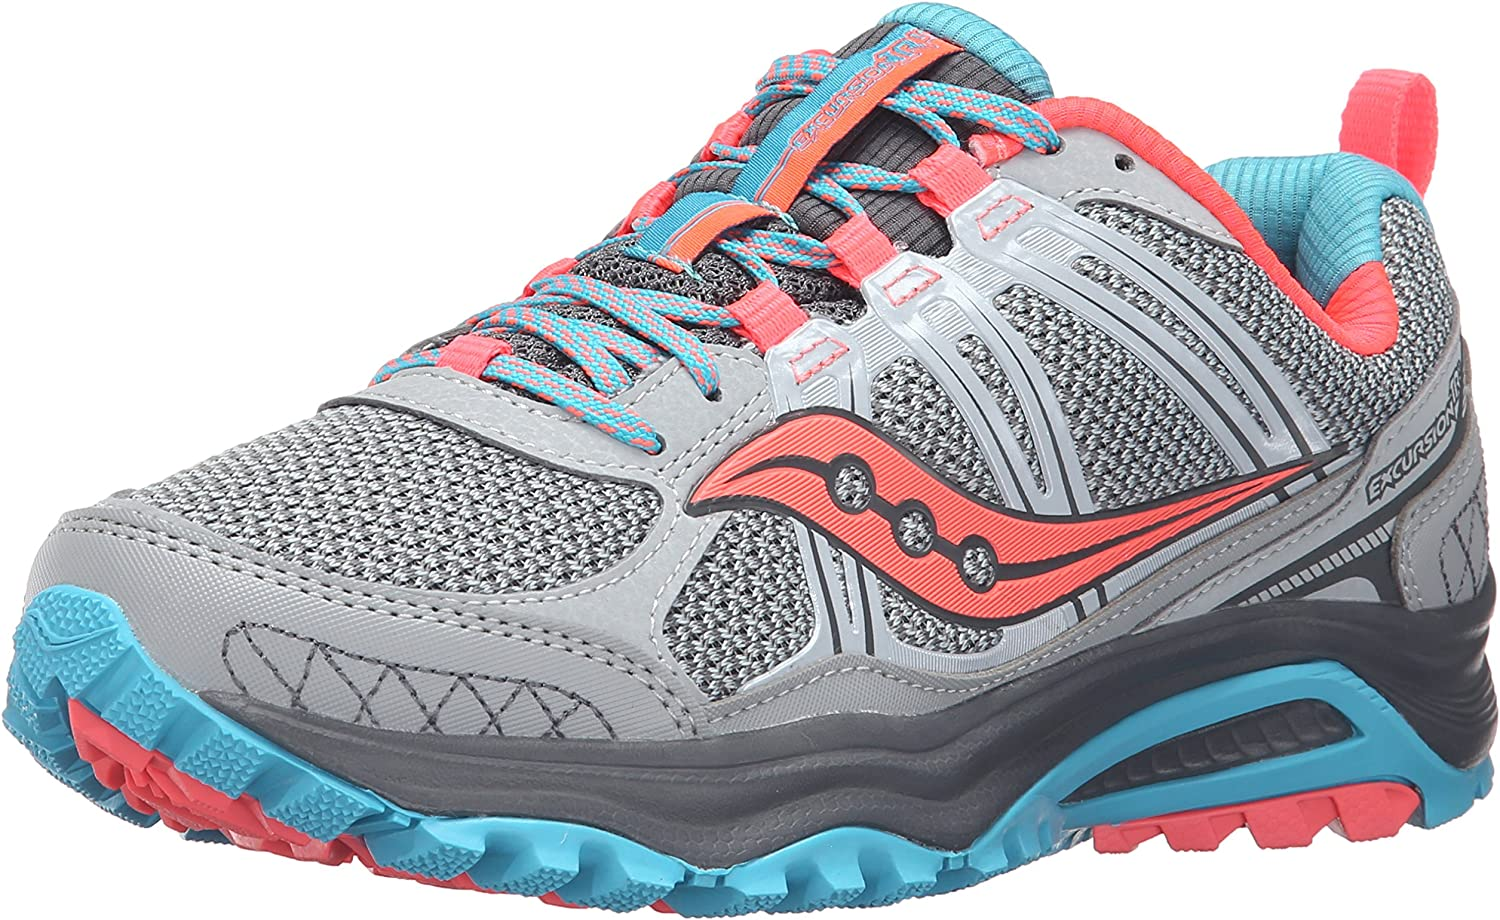 Saucony Women's Grid Excursion Tr10 Trail running shoes